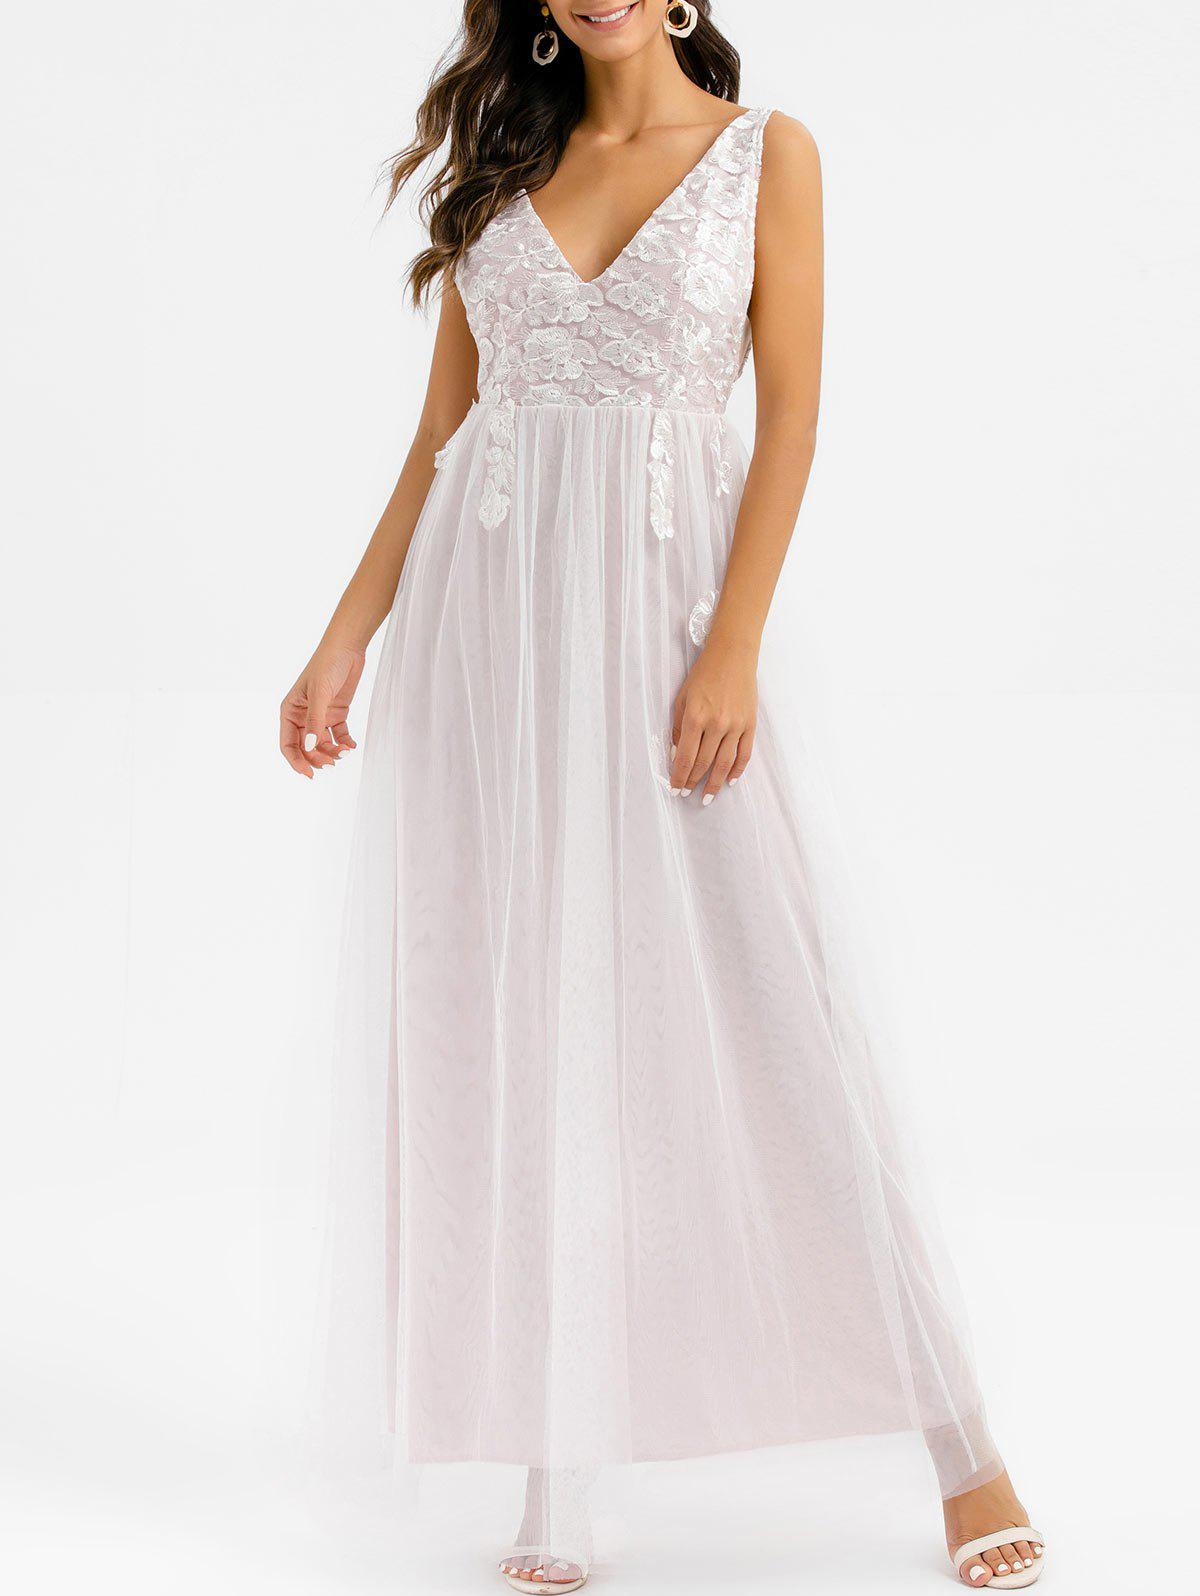 Unique Floral Embroidered Lace Overlay Low Cut Maxi Prom Dress